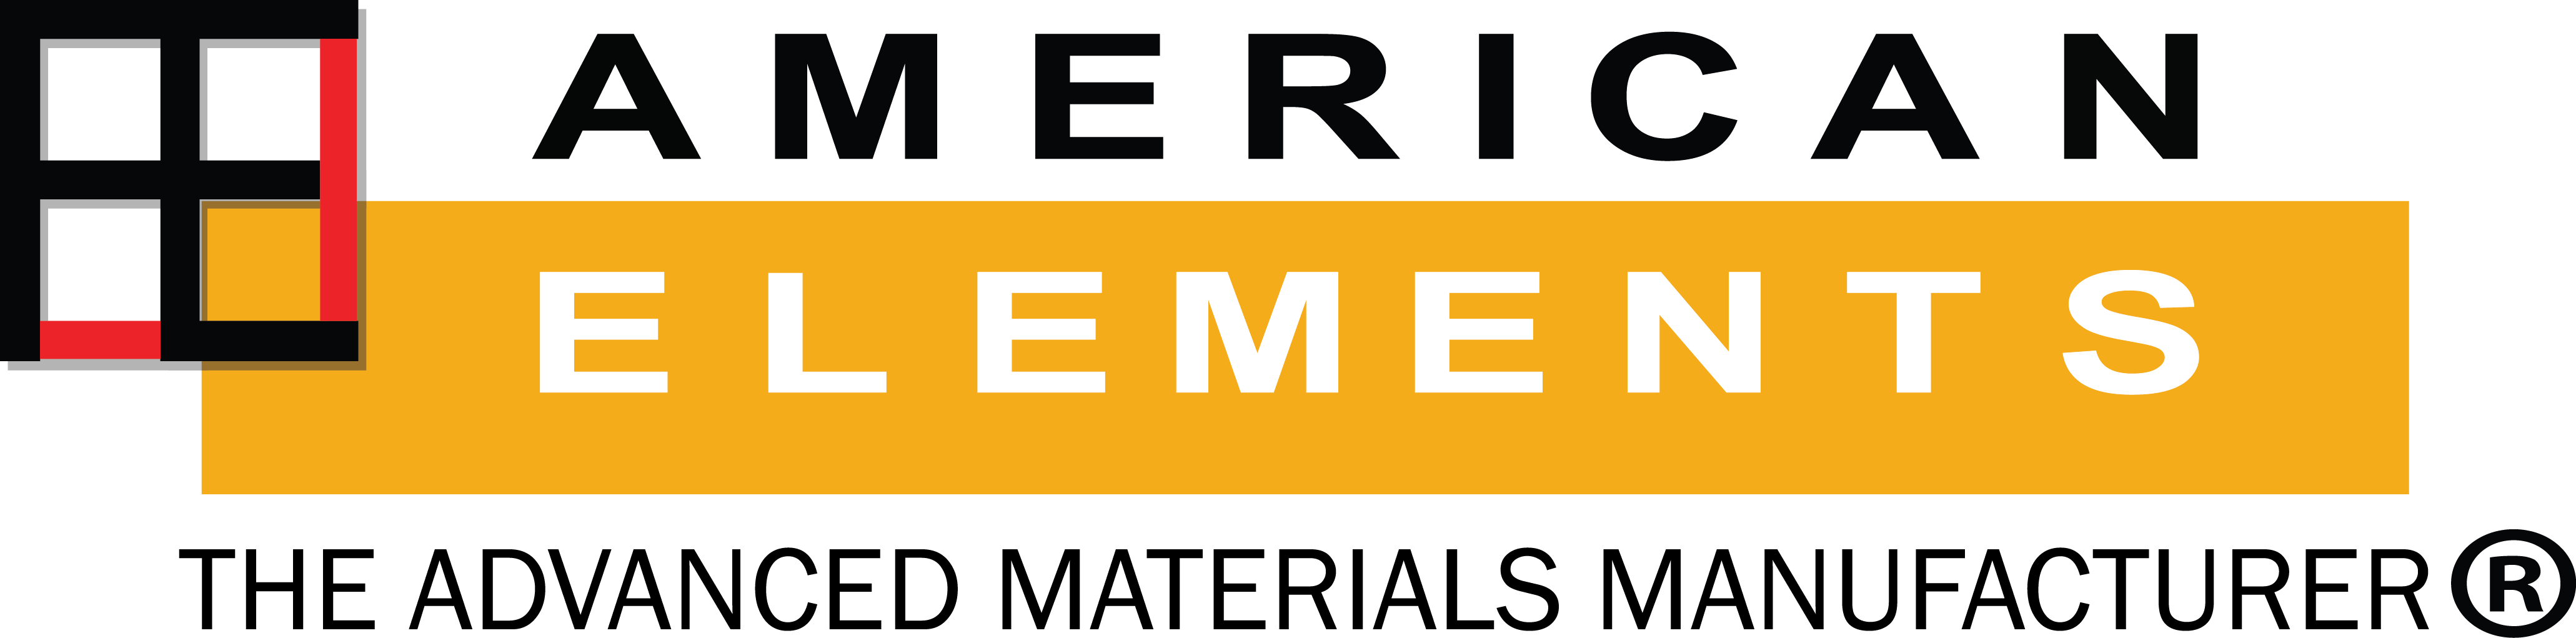 1491488380_AmericanElements-Logo-Display-Sponsorship-EGF2017.png